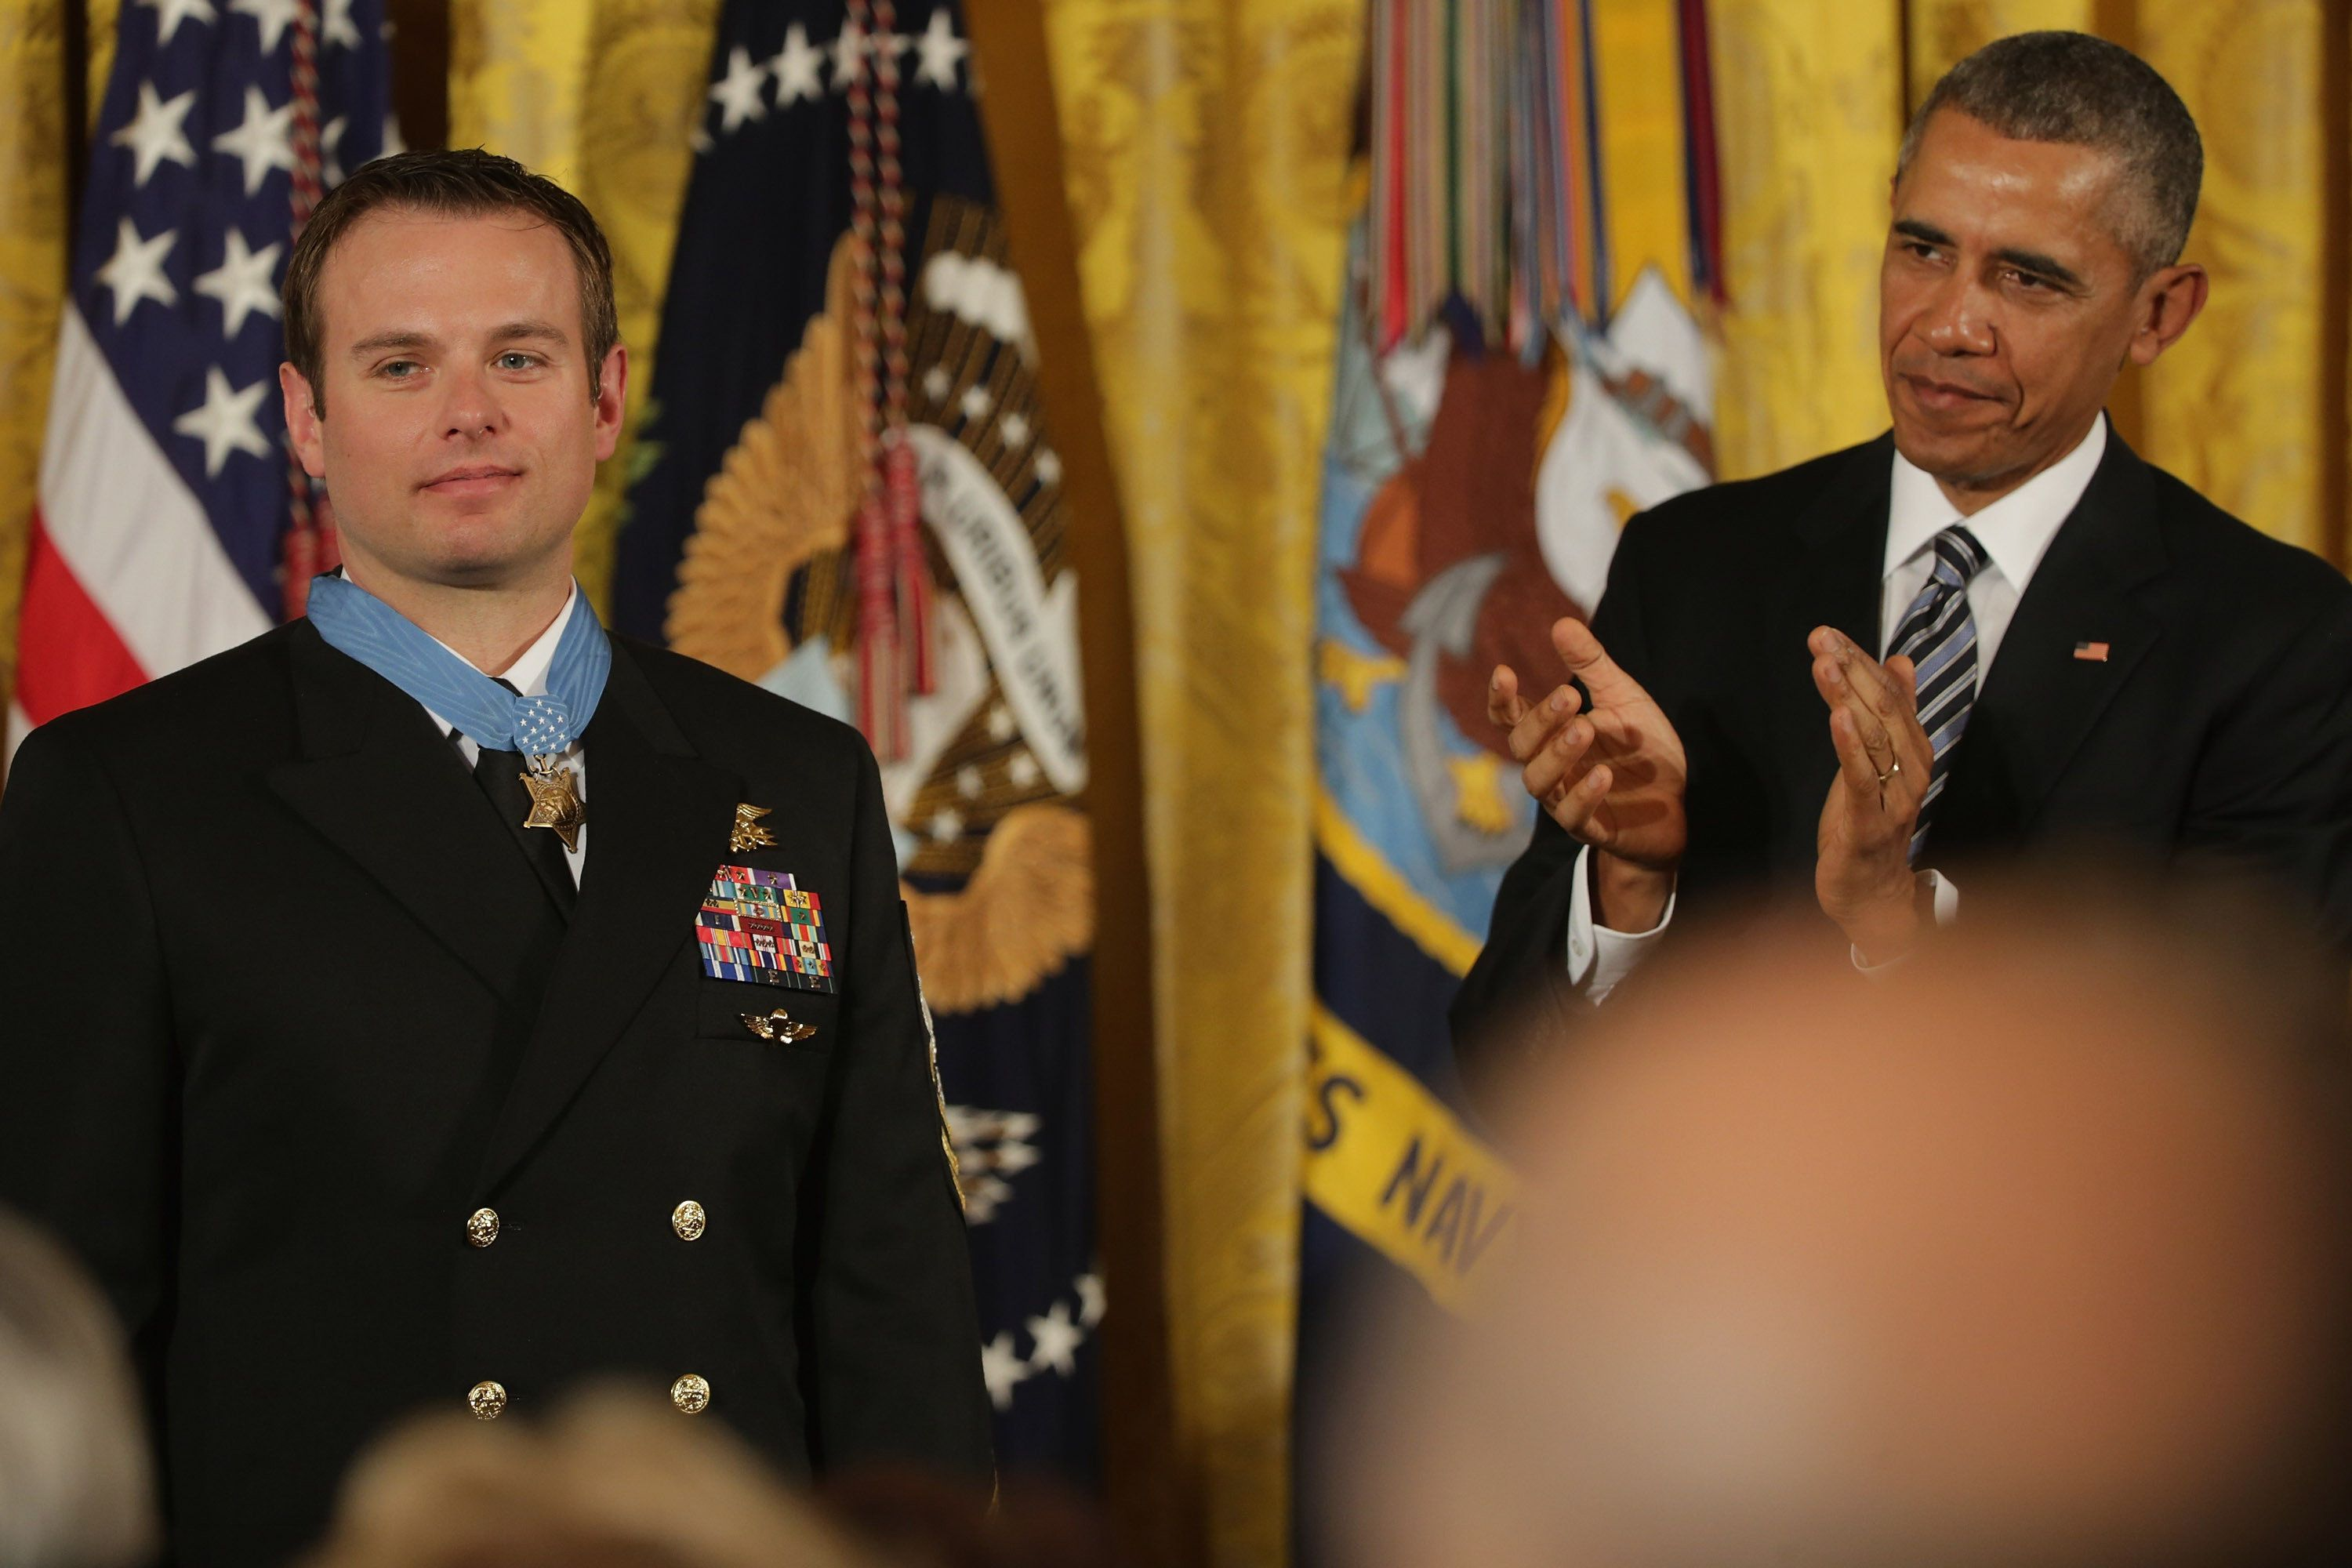 U.S. President Barack Obama applauds after presentibng Navy Senior Chief Edward Byers Jr., 36, with the Medal of Honor during a ceremony in the East Room of the White House February 29, 2016 in Washington, DC. A member of Navy SEAL Team 6, Byers received the Medal of Honor for his role in rescuing an American hostage from the Taliban in Afghanistan in December 2012.